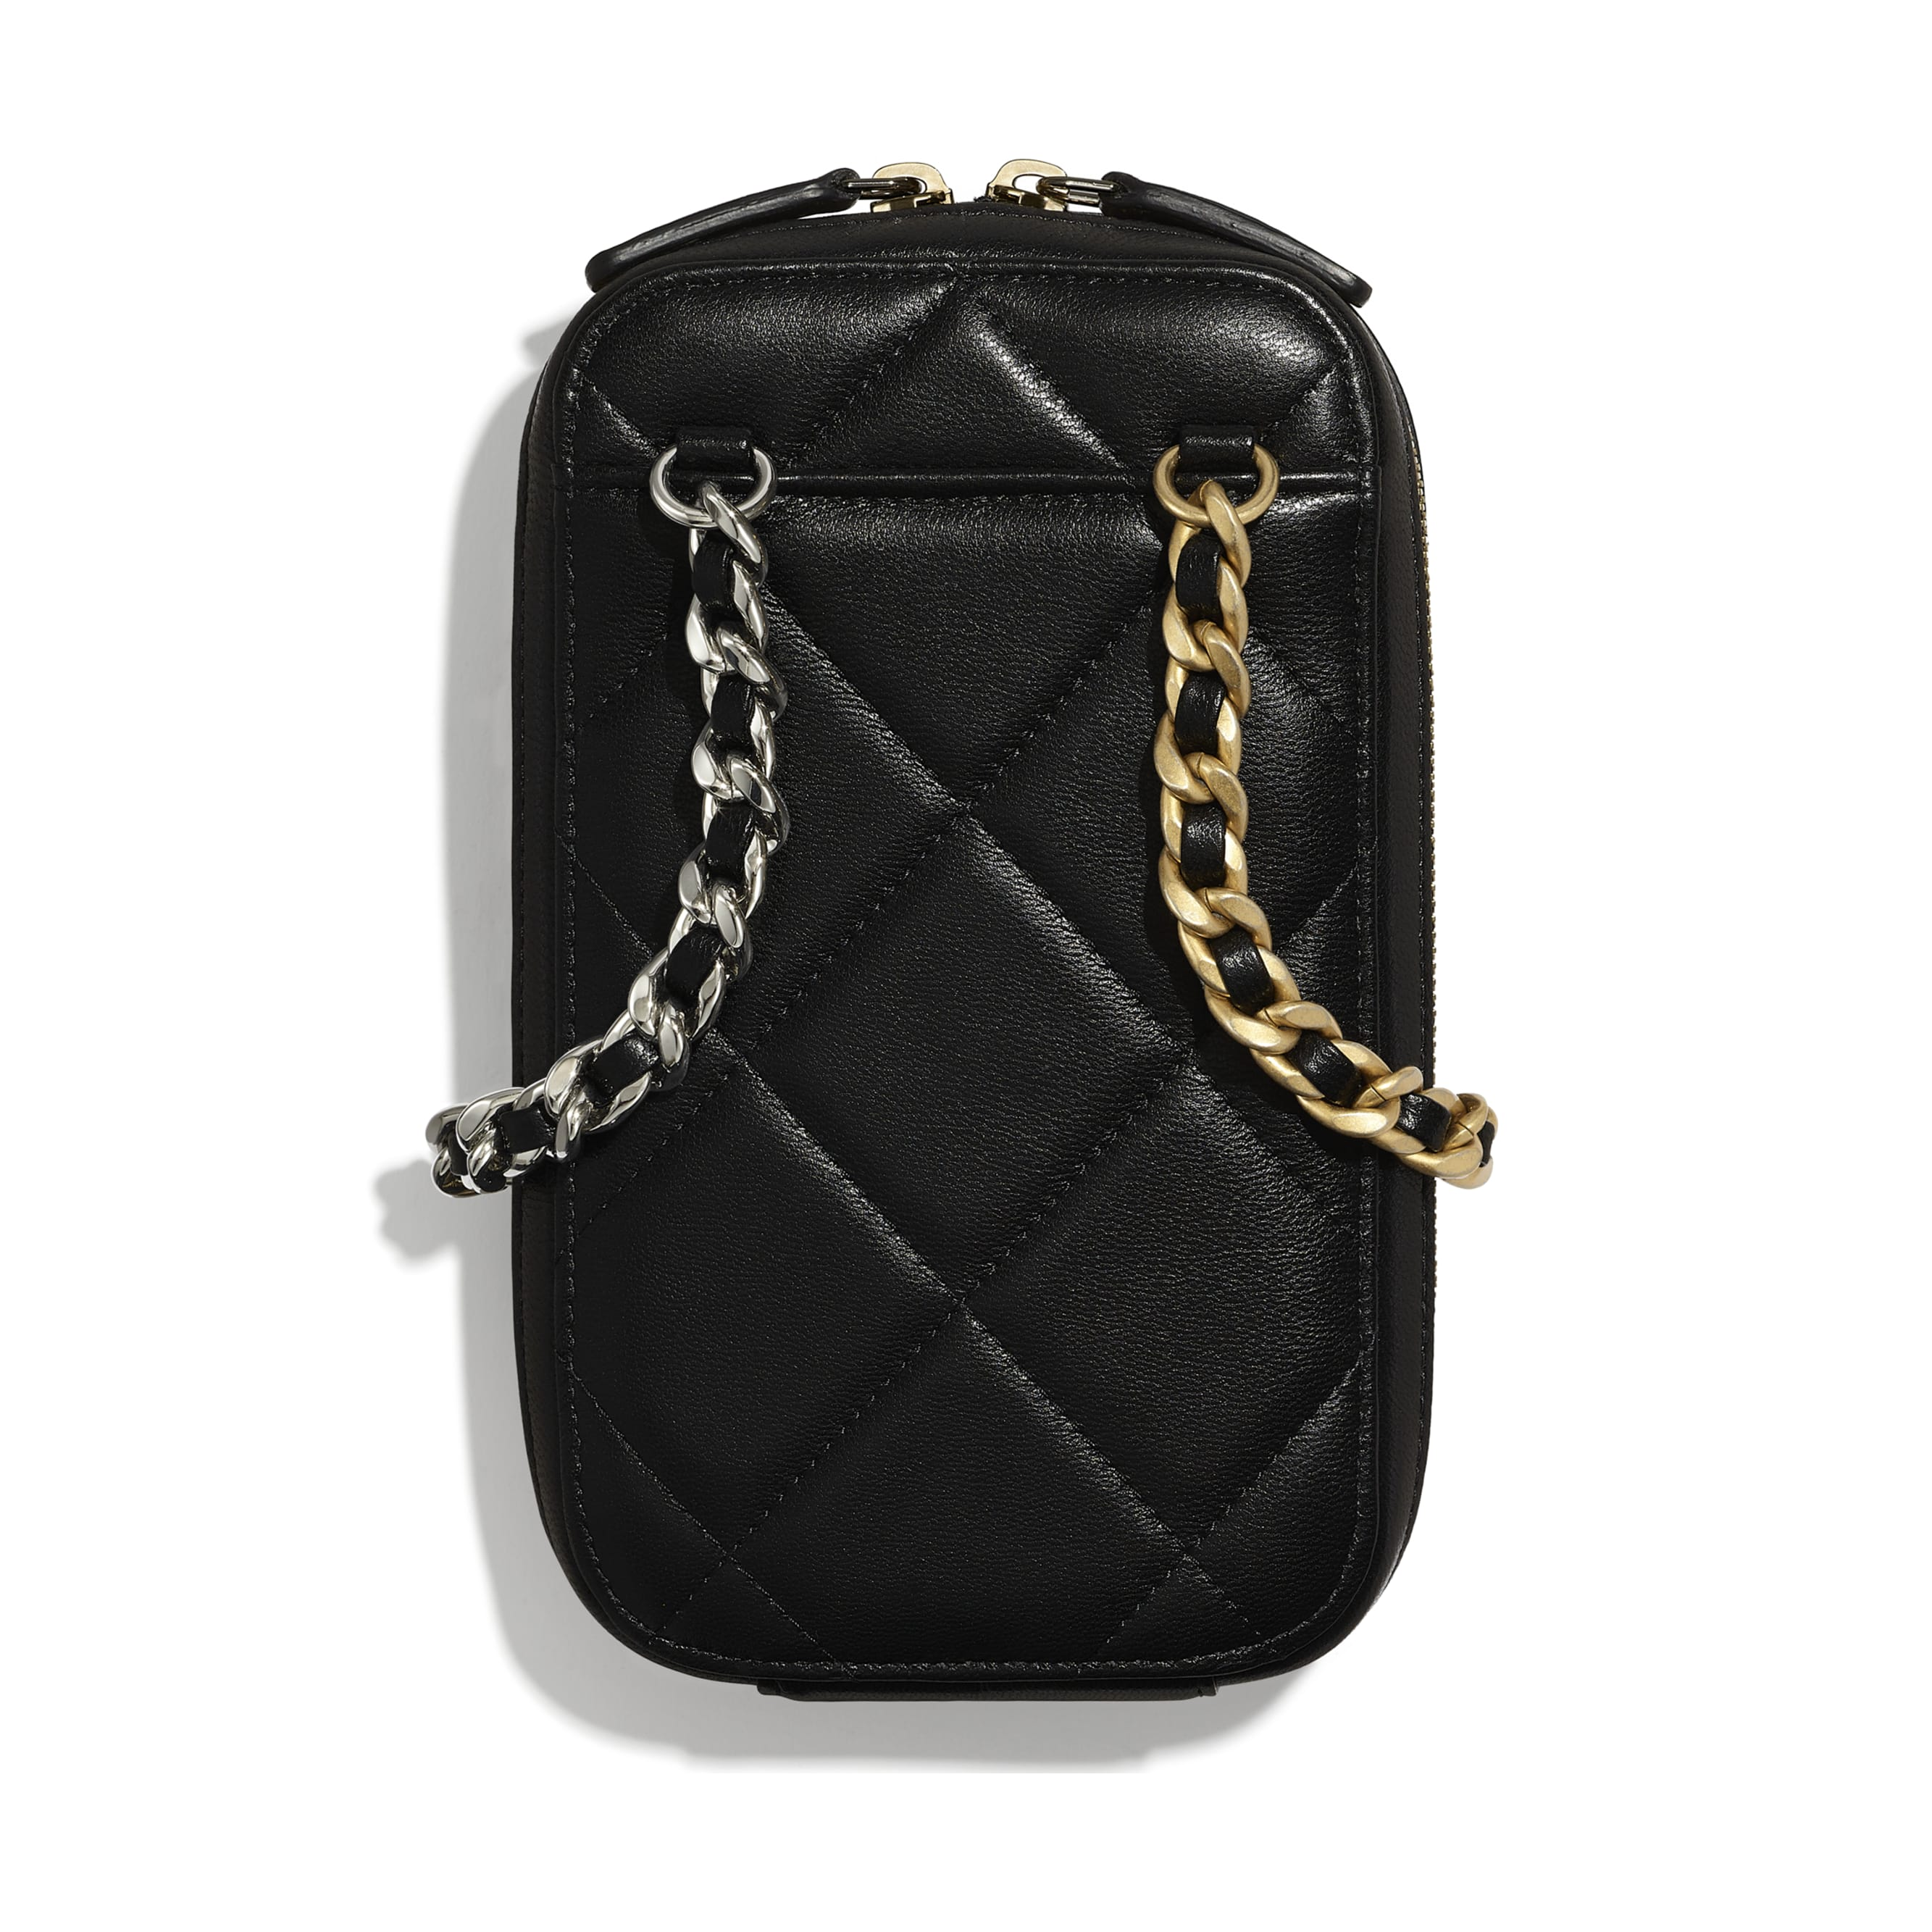 CHANEL 19 Phone Holder with Chain - Black - Shiny Goatskin, Gold-Tone, Silver-Tone & Ruthenium-Finish Metal - CHANEL - Alternative view - see standard sized version